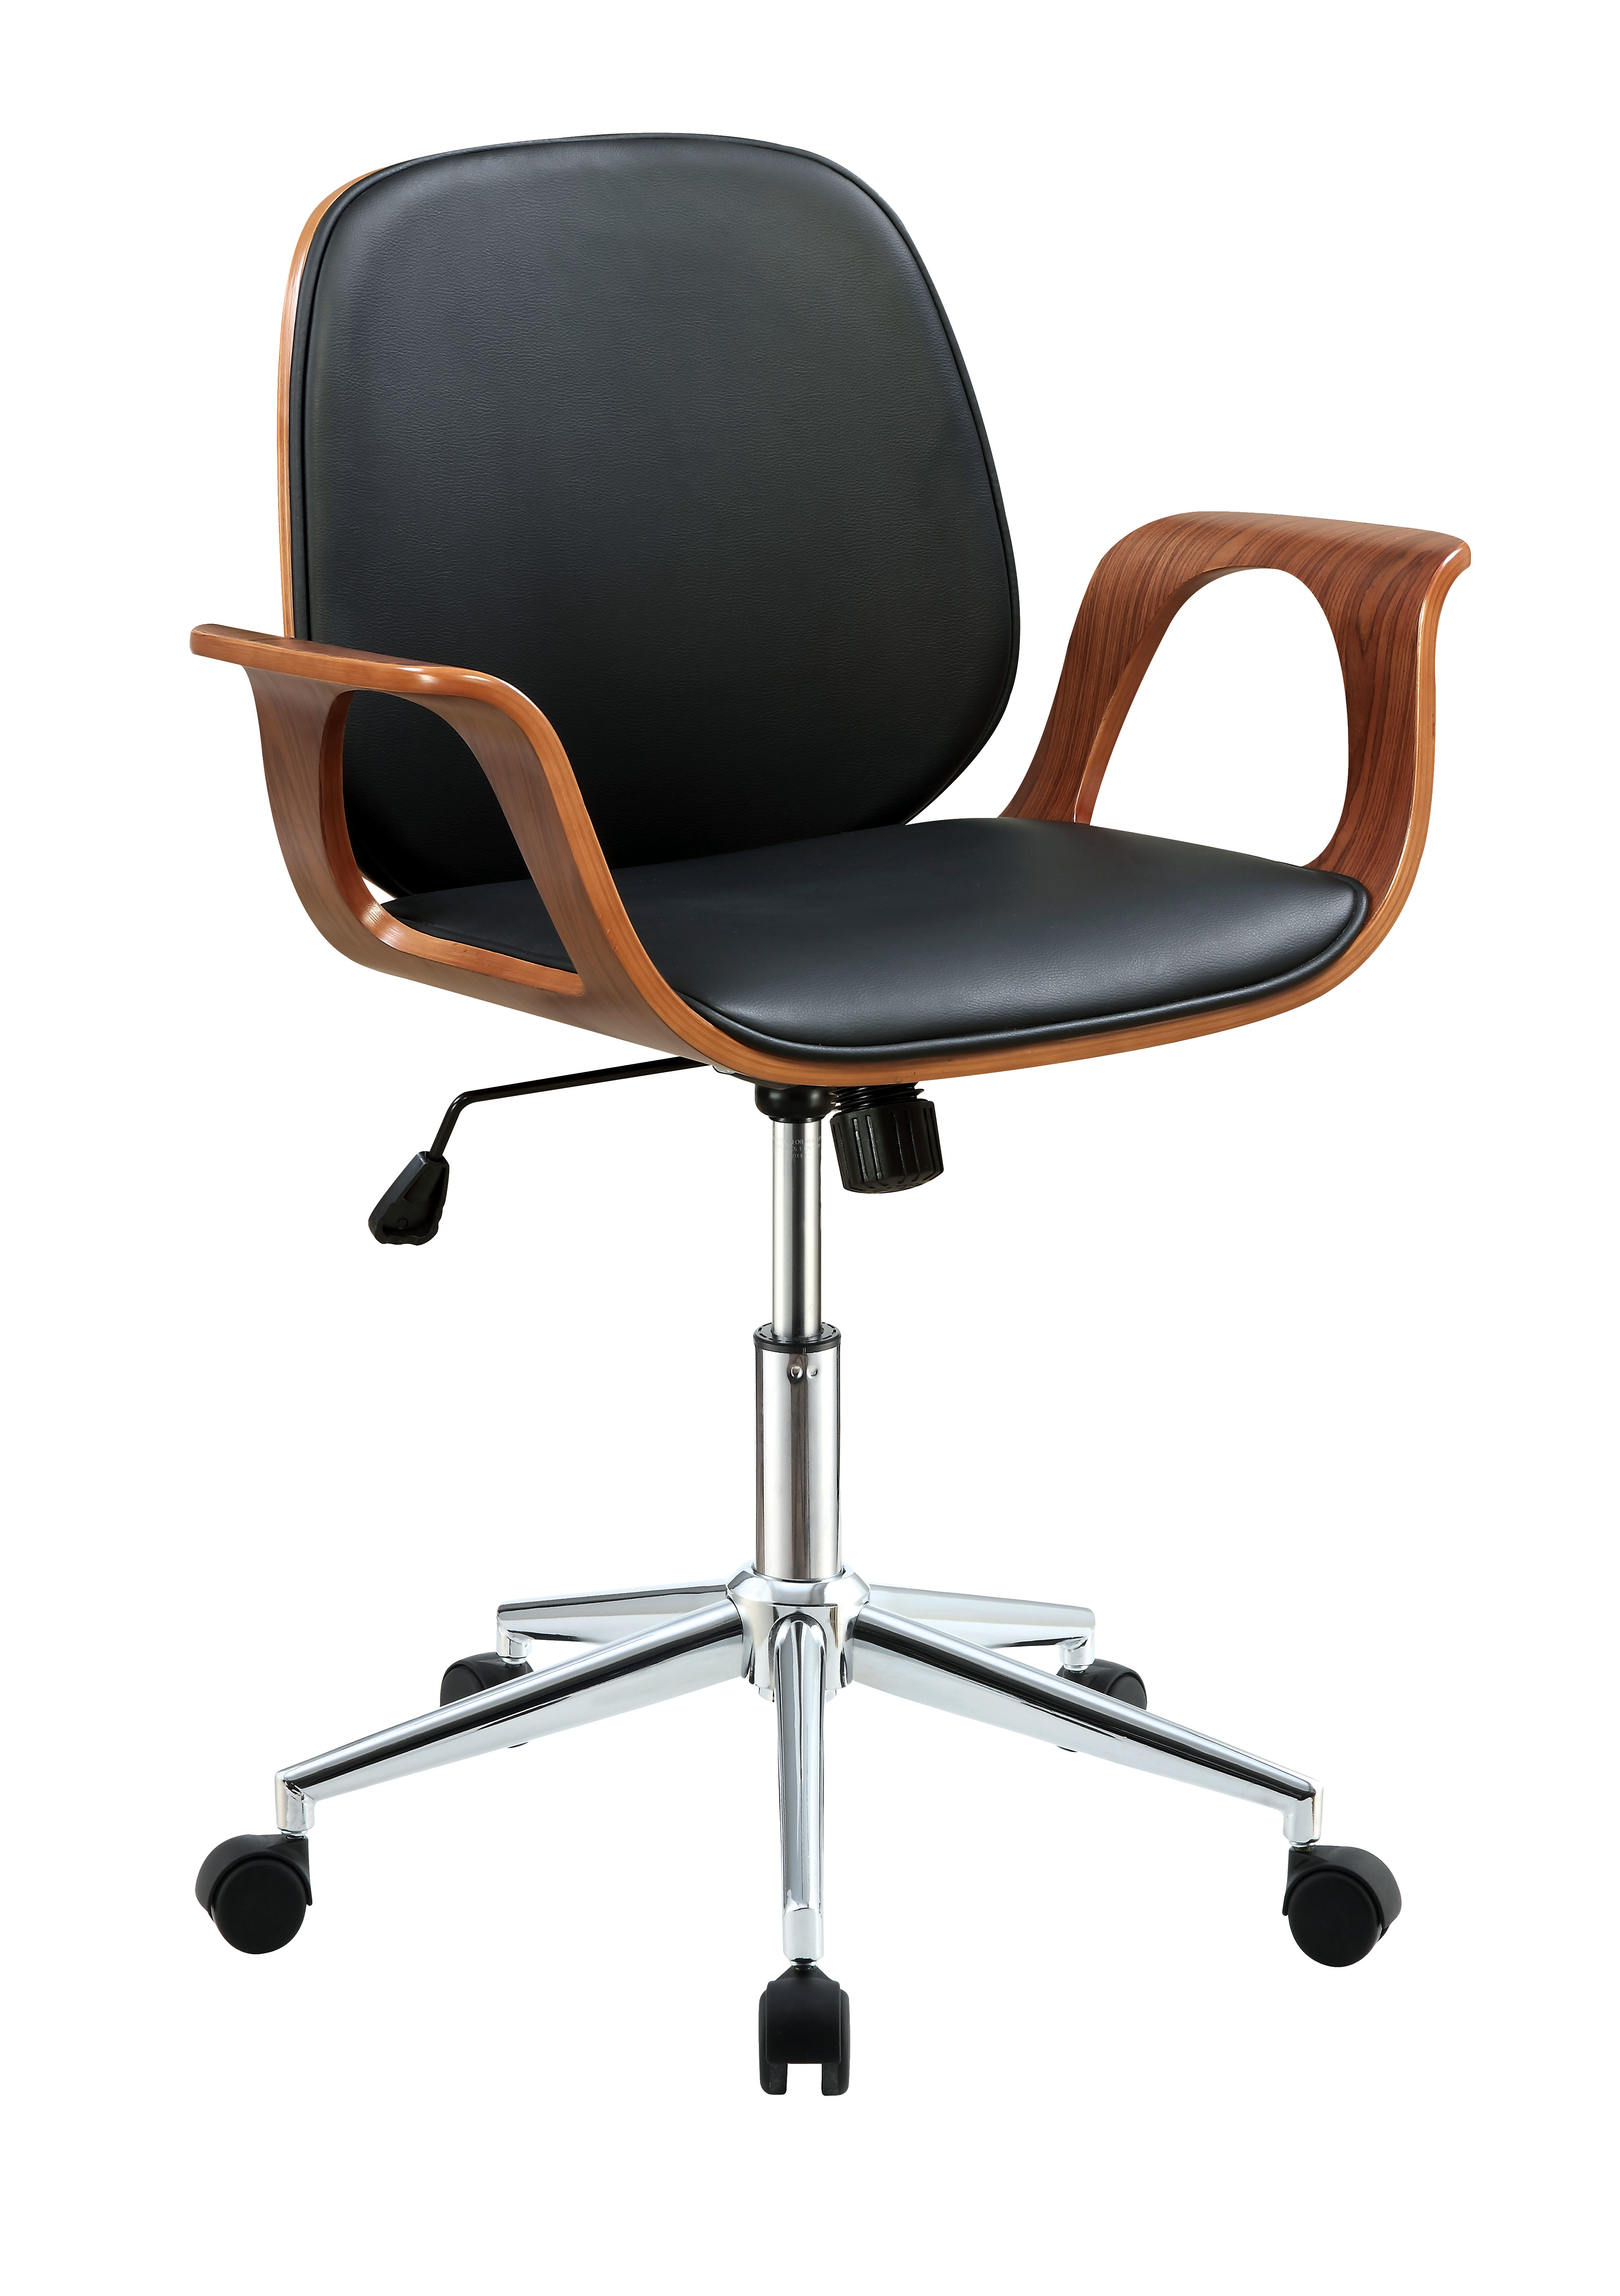 Metal & Wooden Office Arm Chair, Black & Walnut Brown